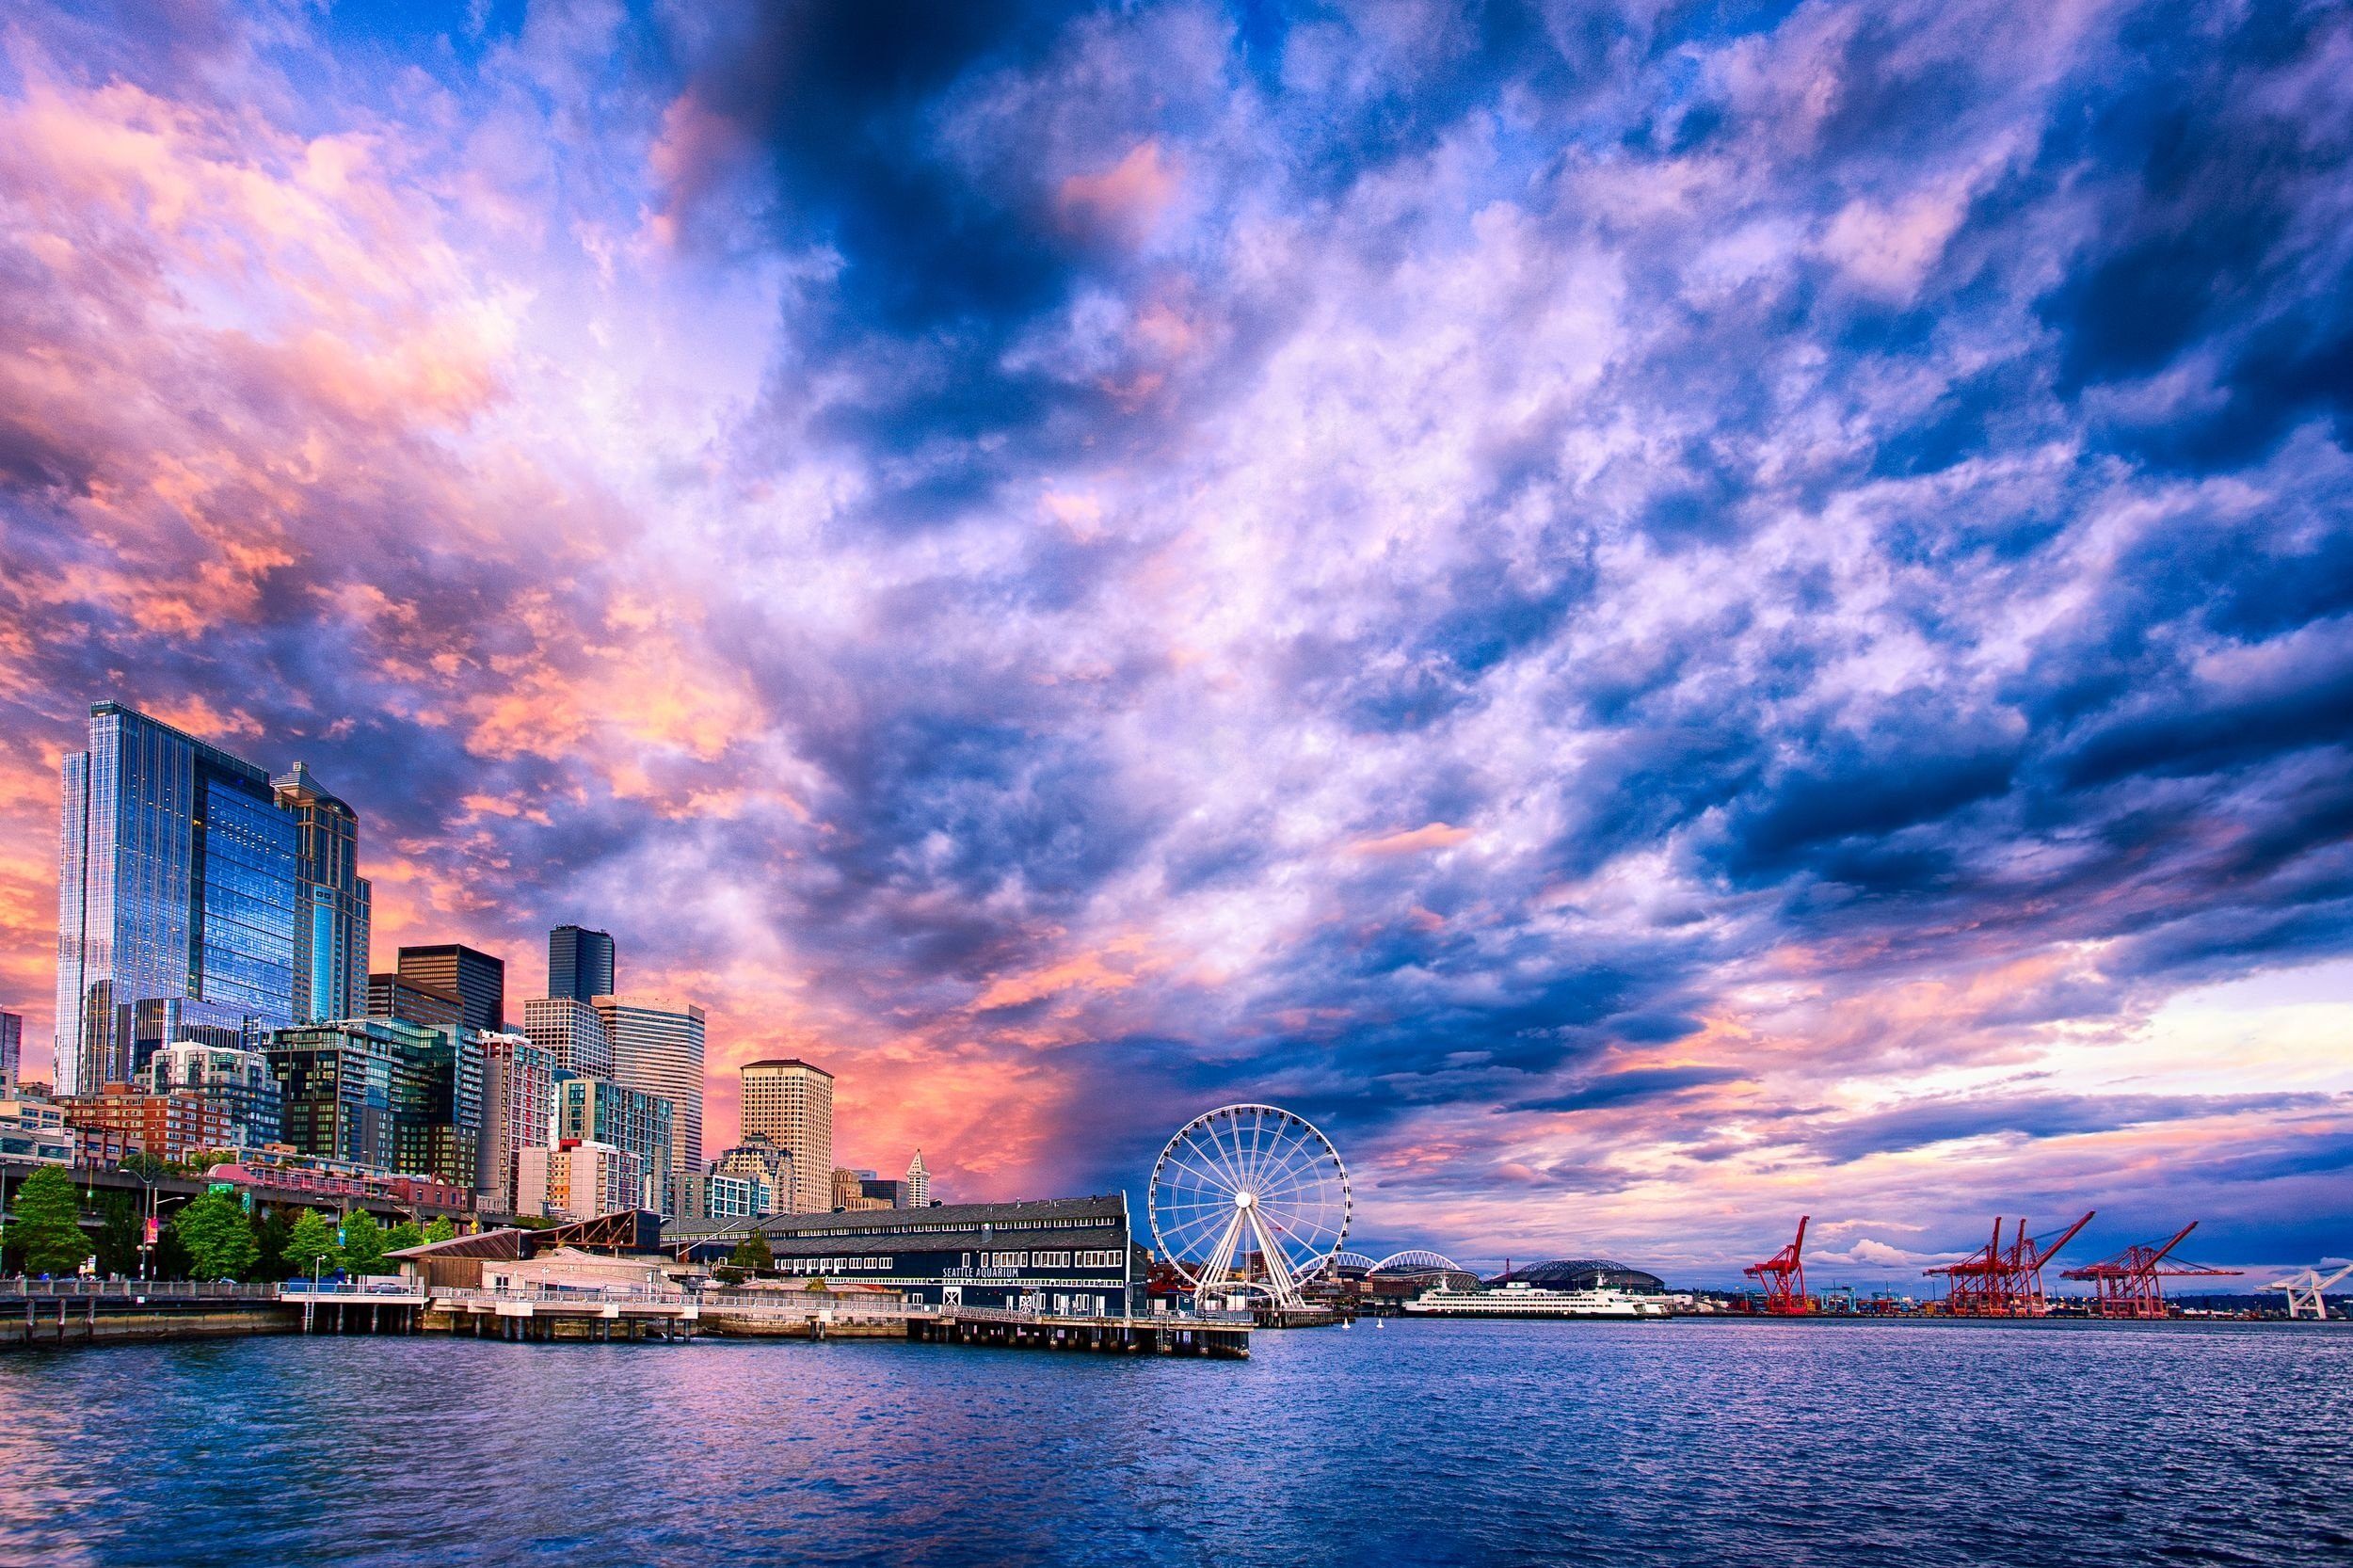 seattle ferris wheel sunset wallpaper 2500x1666 291362